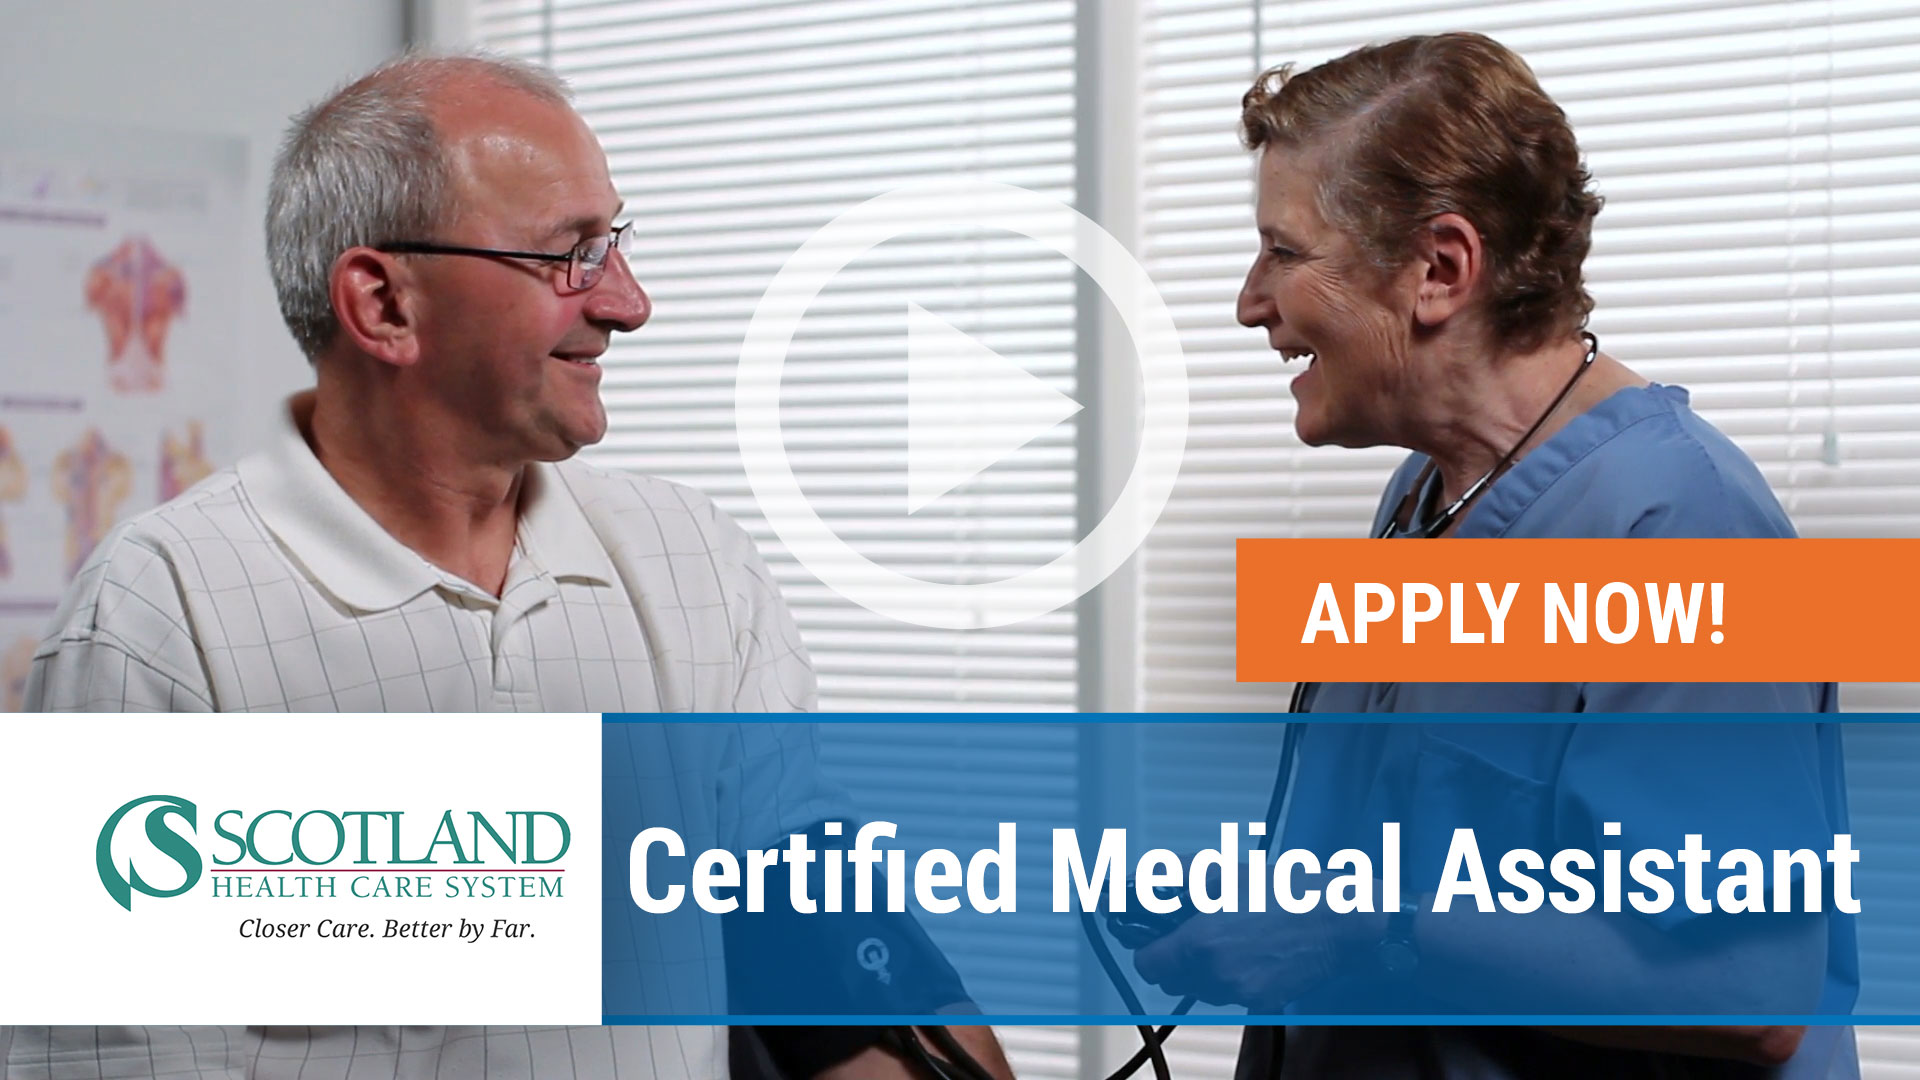 Watch our careers video for available job opening Certified Medical Assistant for Scotland Health Care System in Laurinburg, North Carolina